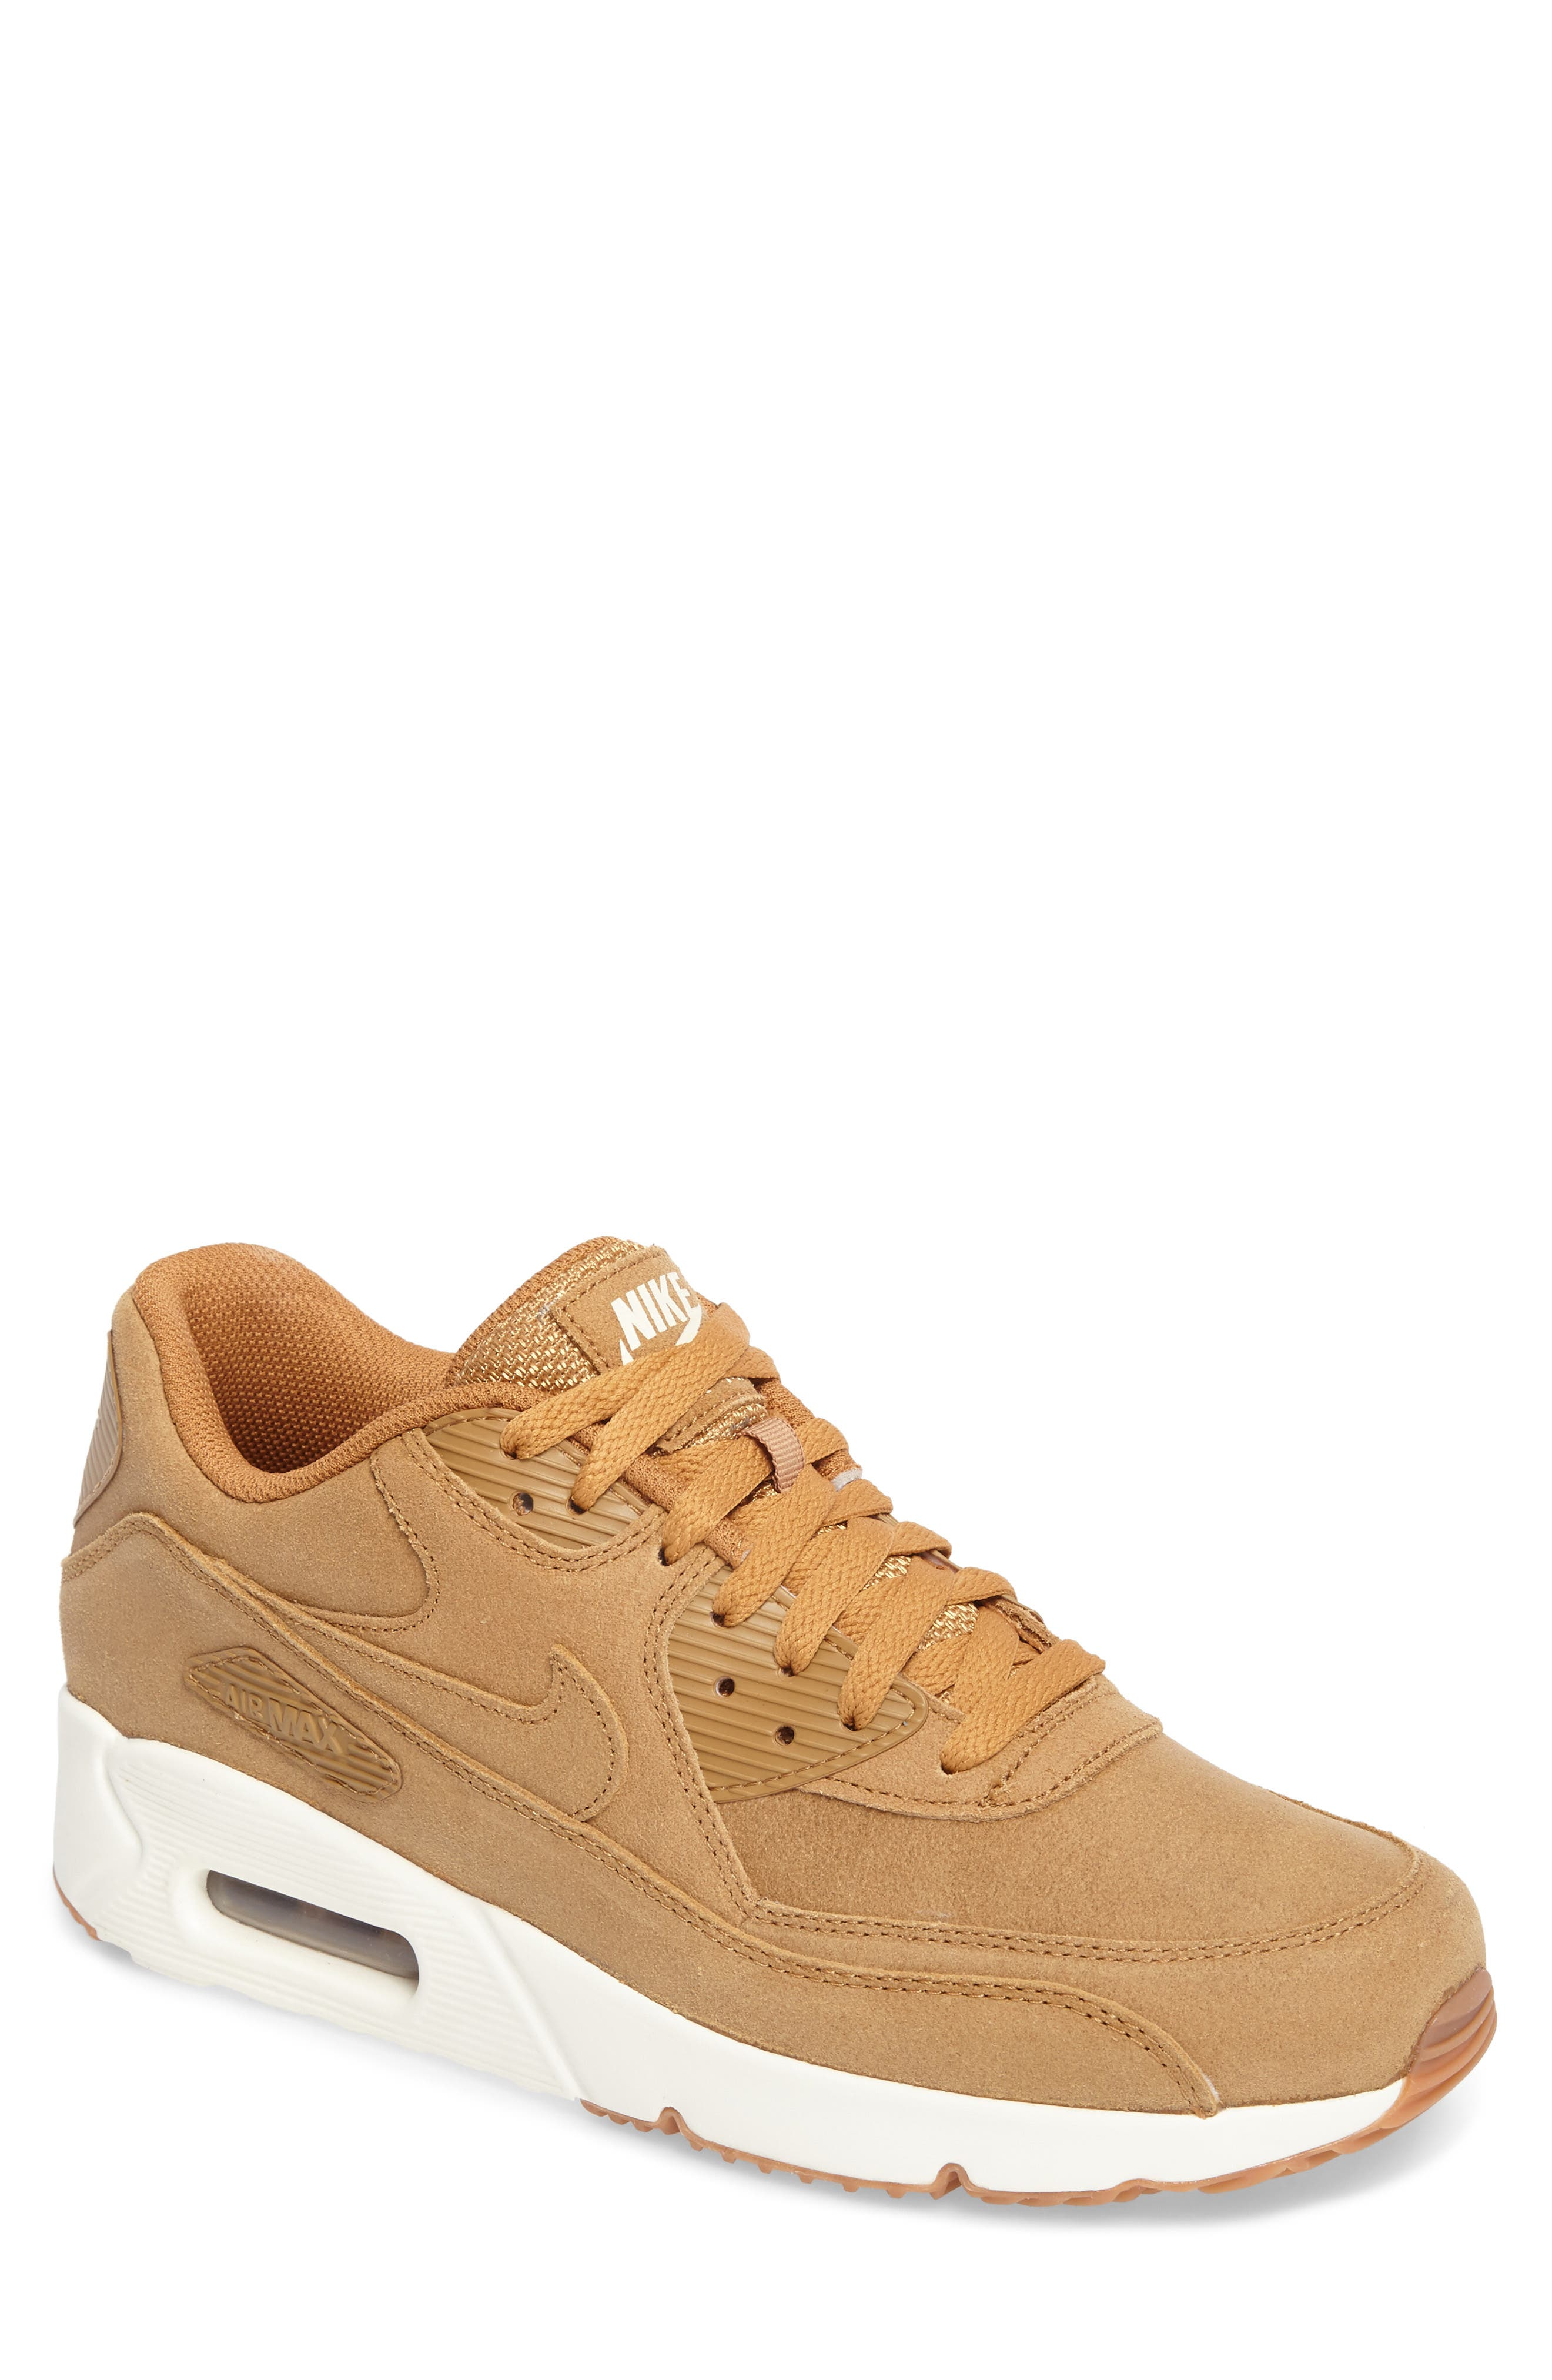 Air Max 90 Ultra 2.0 Sneaker,                         Main,                         color, Flax/Flax/Sail/Gum Med Brown